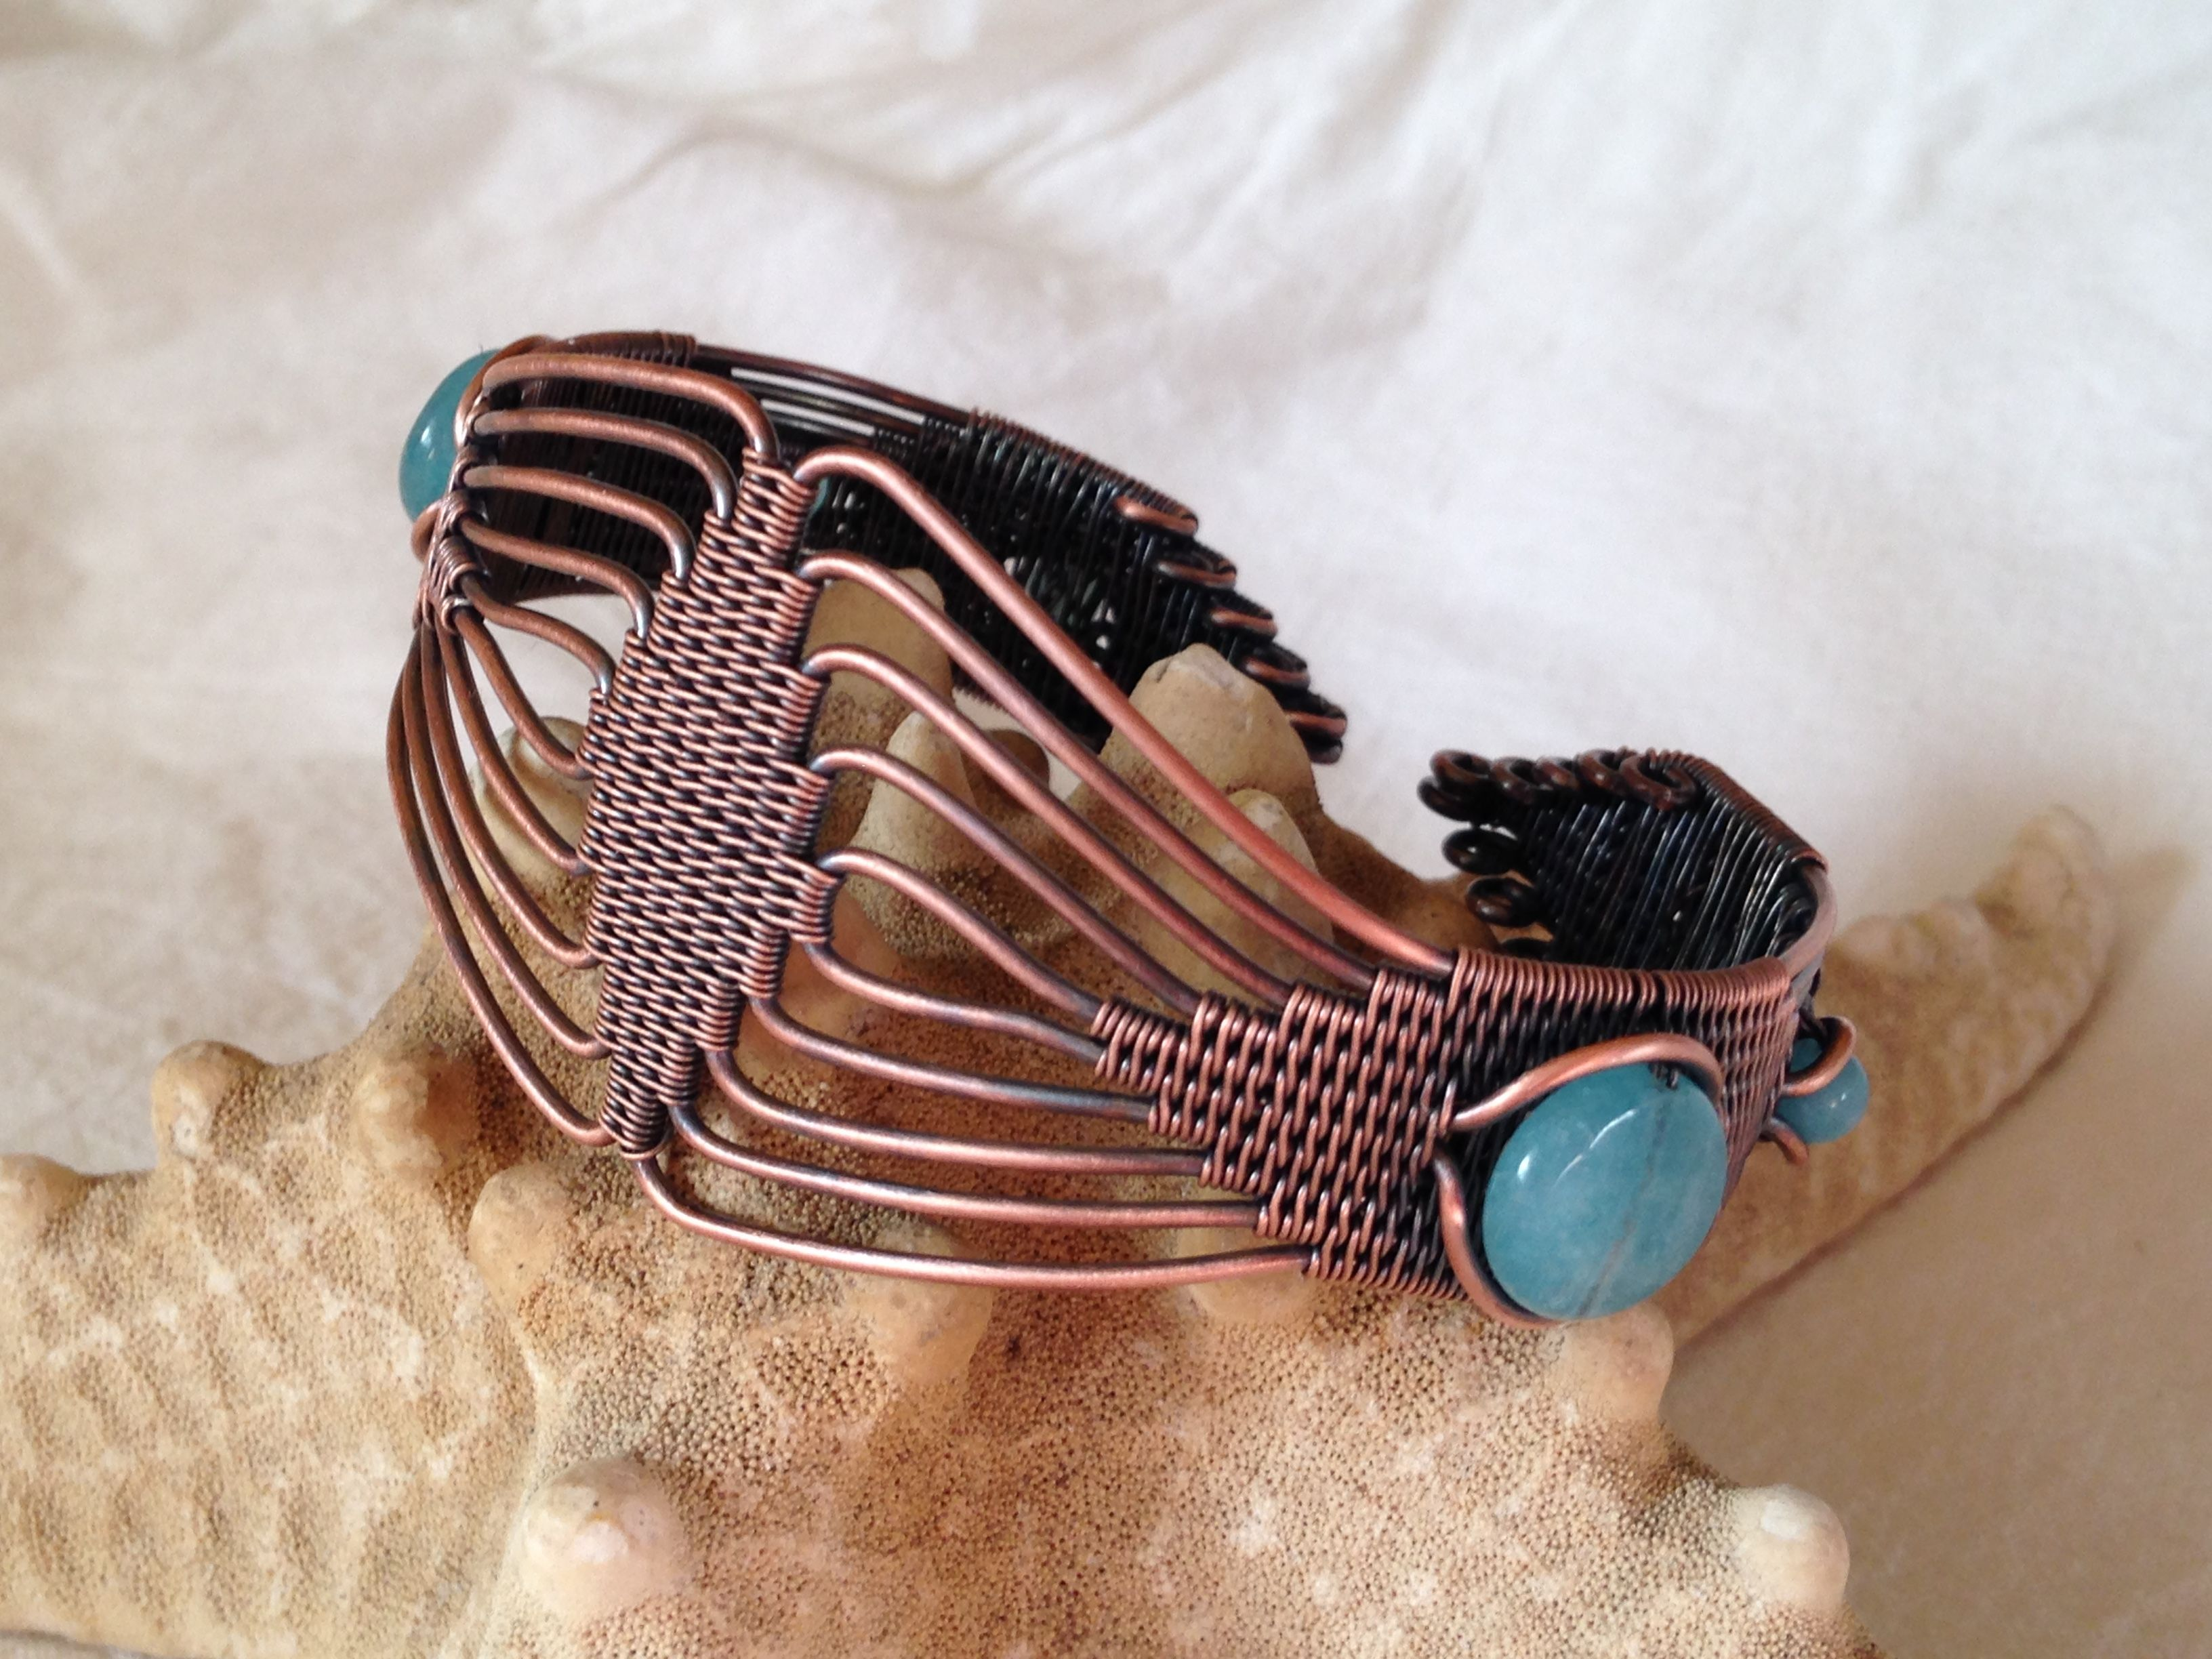 Copper and angelite.  Made  by Gedő Mária